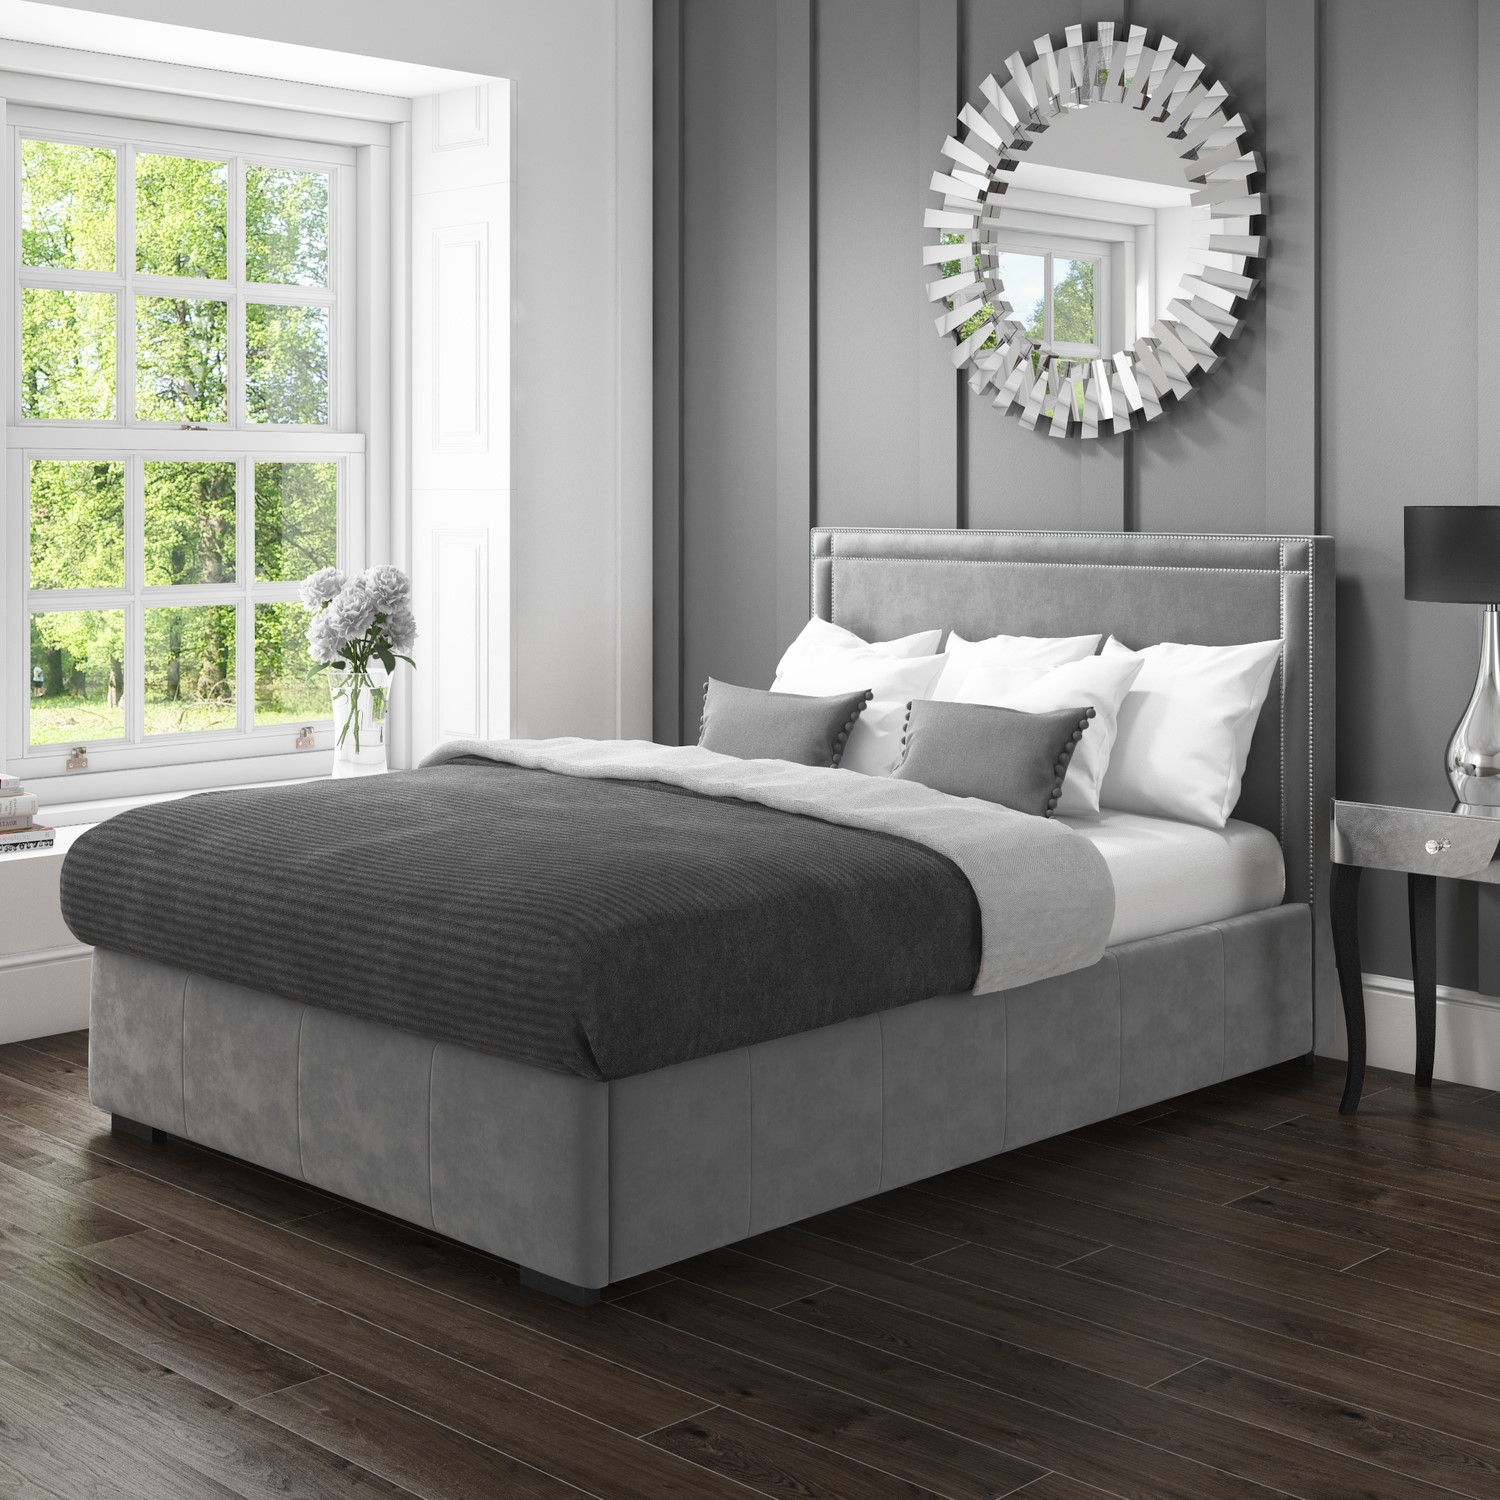 Cool Safina King Size Ottoman Bed With Stud Detailing In Grey Velvet Creativecarmelina Interior Chair Design Creativecarmelinacom